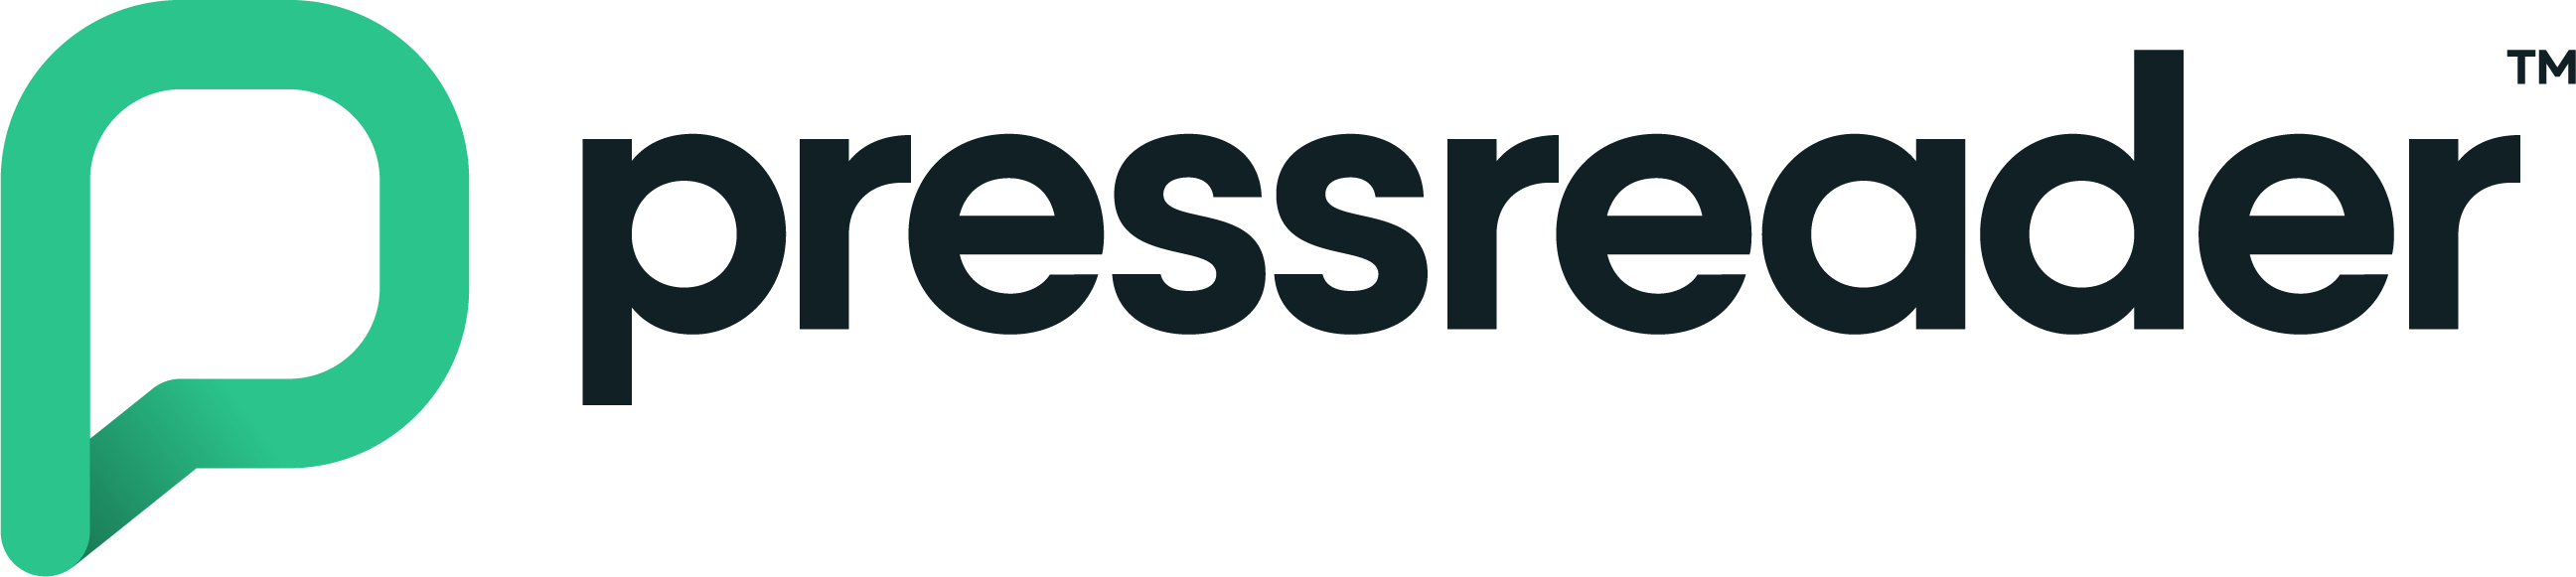 logo PressReader a